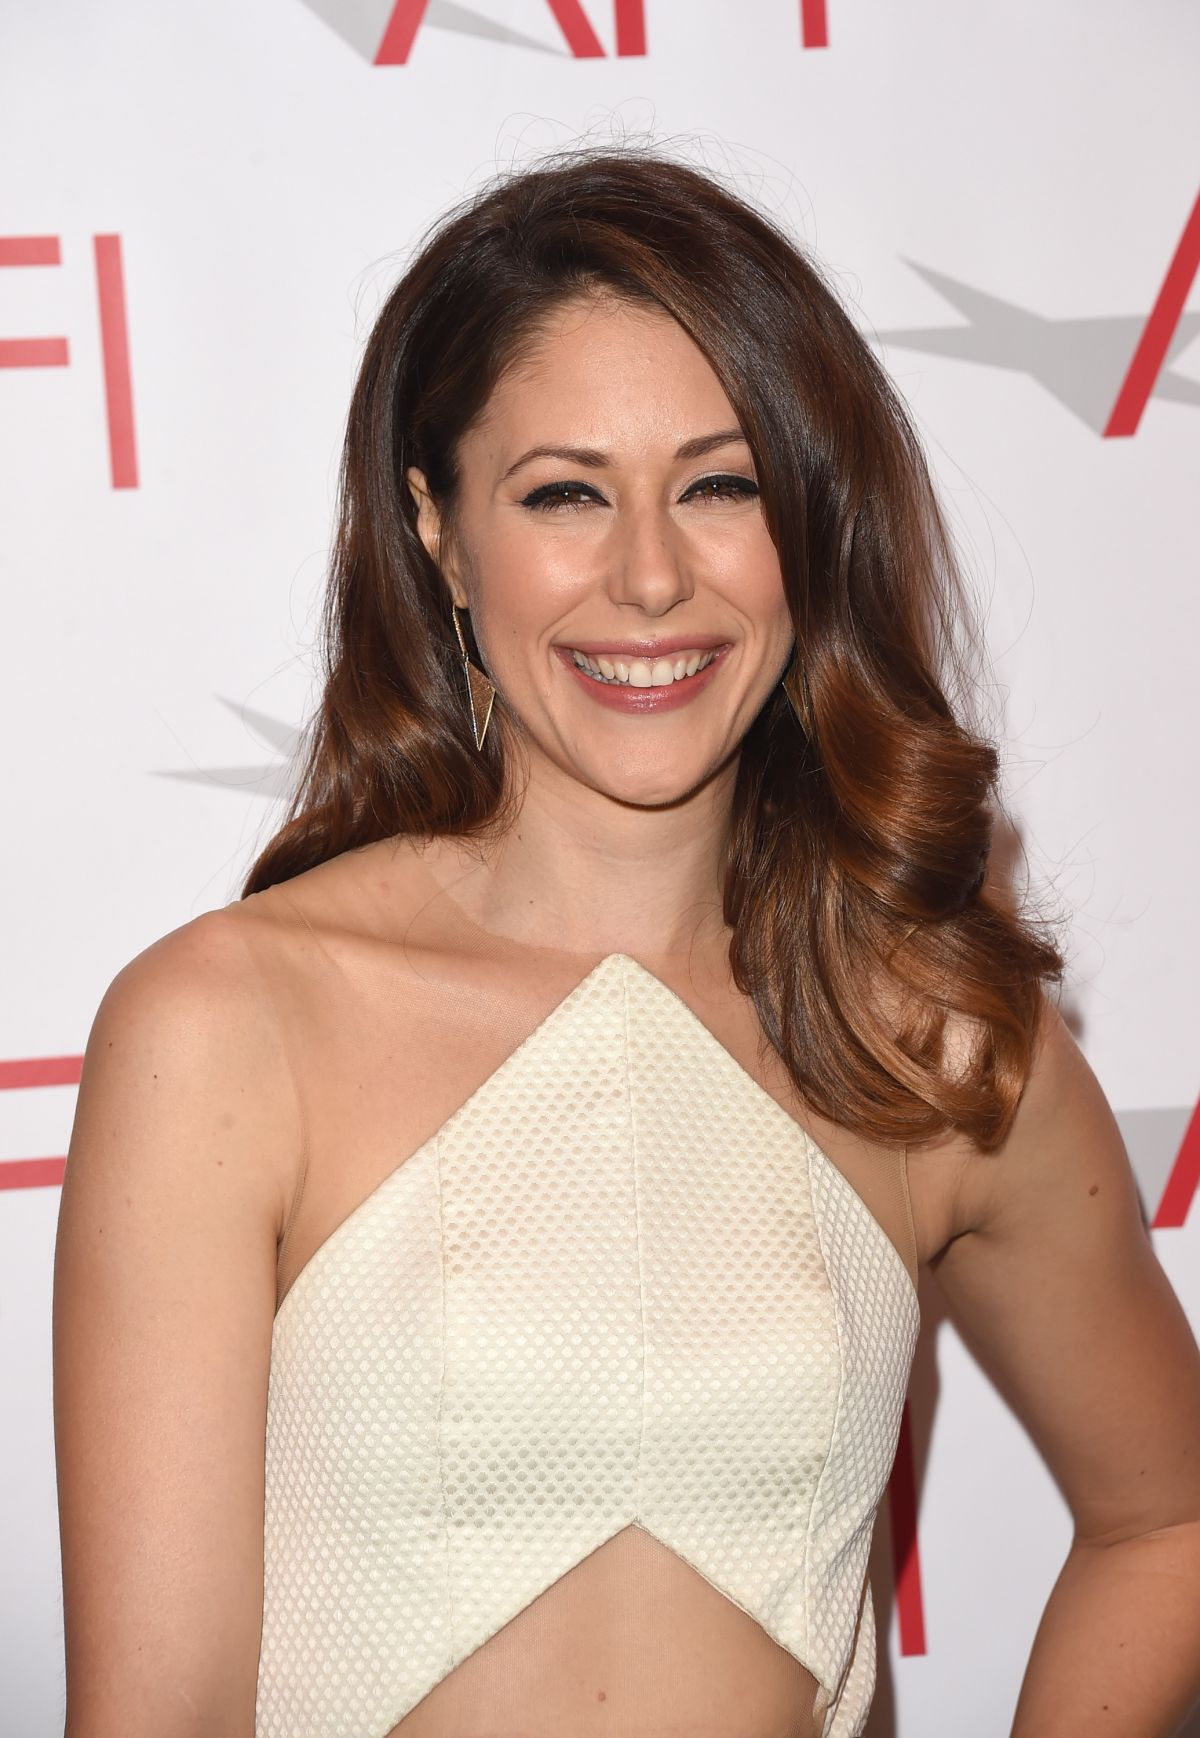 AMANDA CREW at 2015 AFI Awards in Los Angeles